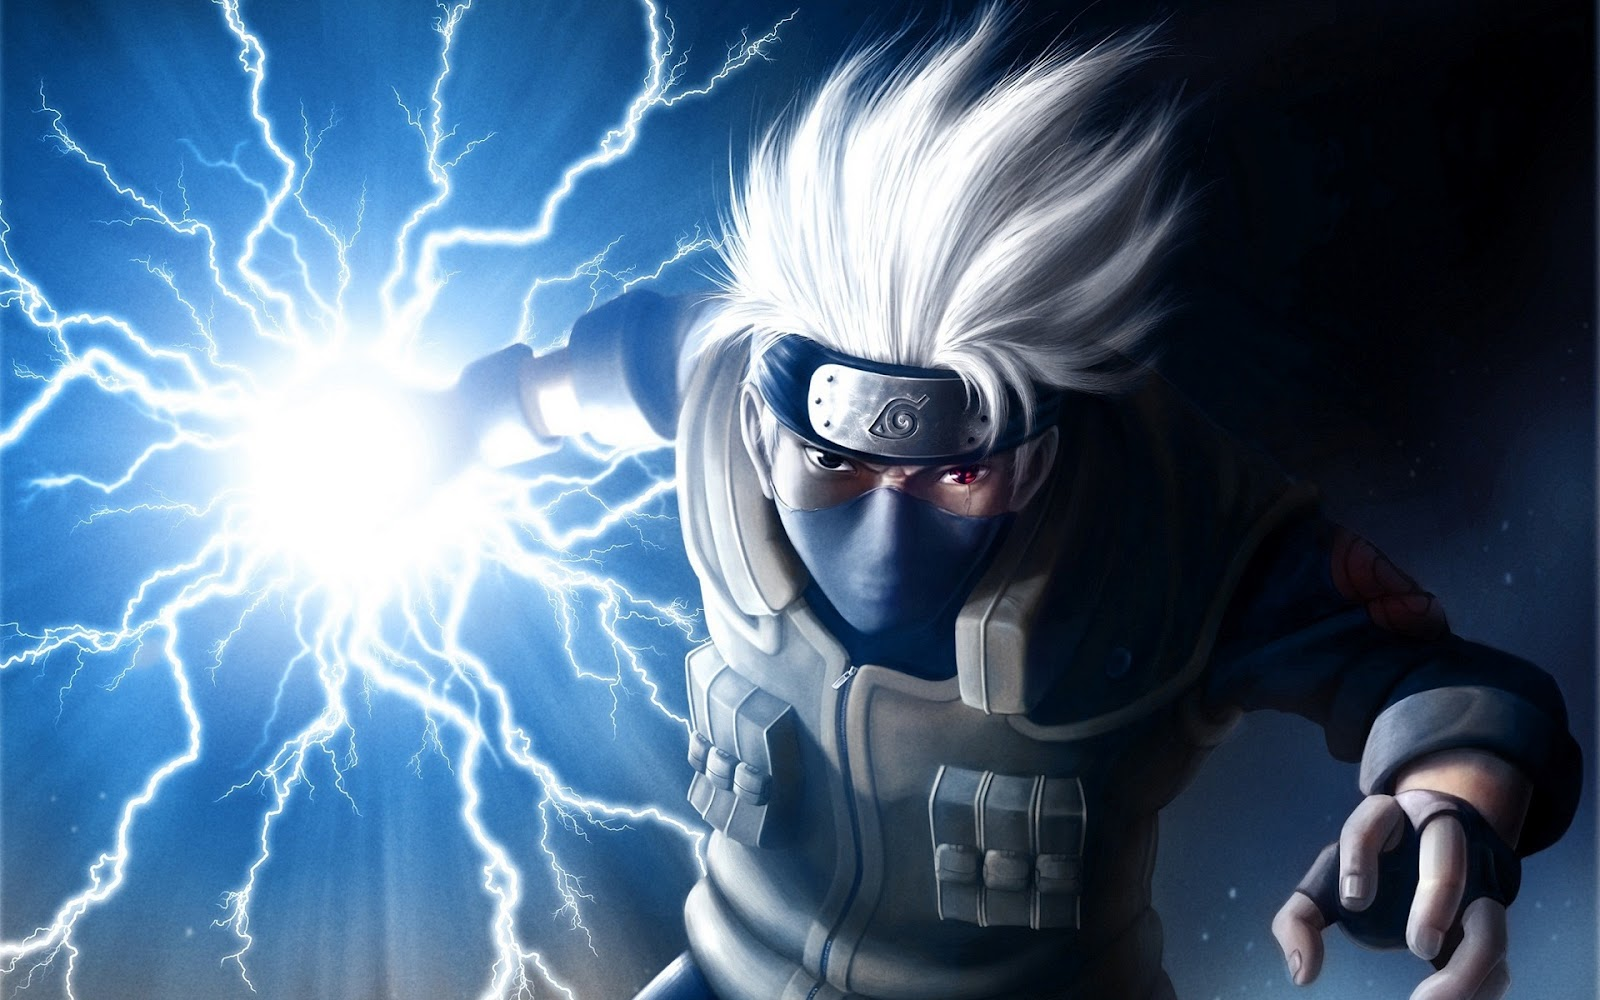 Kakashi wallpaper 1920x1080 wallpapersafari - Kakashi sensei wallpaper ...